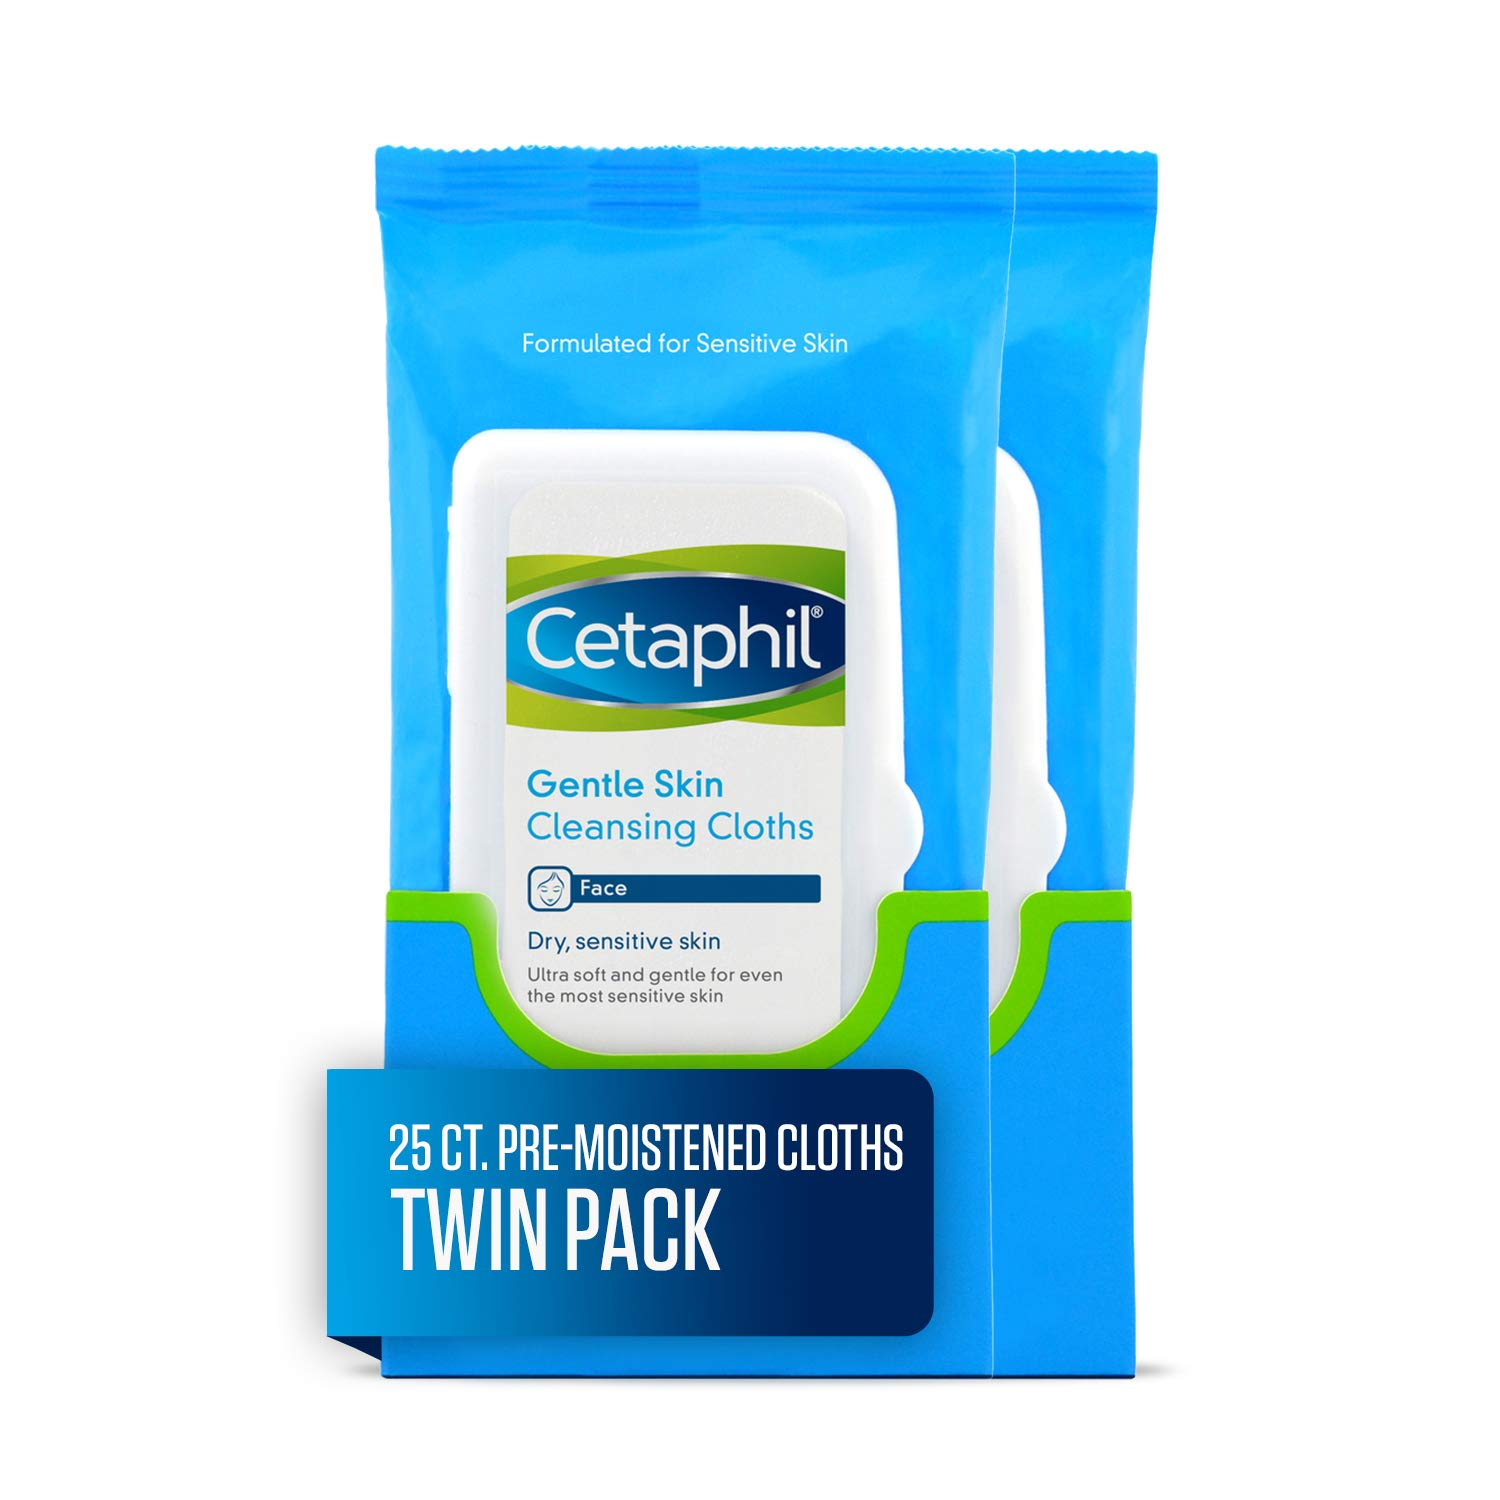 Cetaphil Gentle Skin Cleansing Cloths, 25 Count (Pack of 2): Beauty